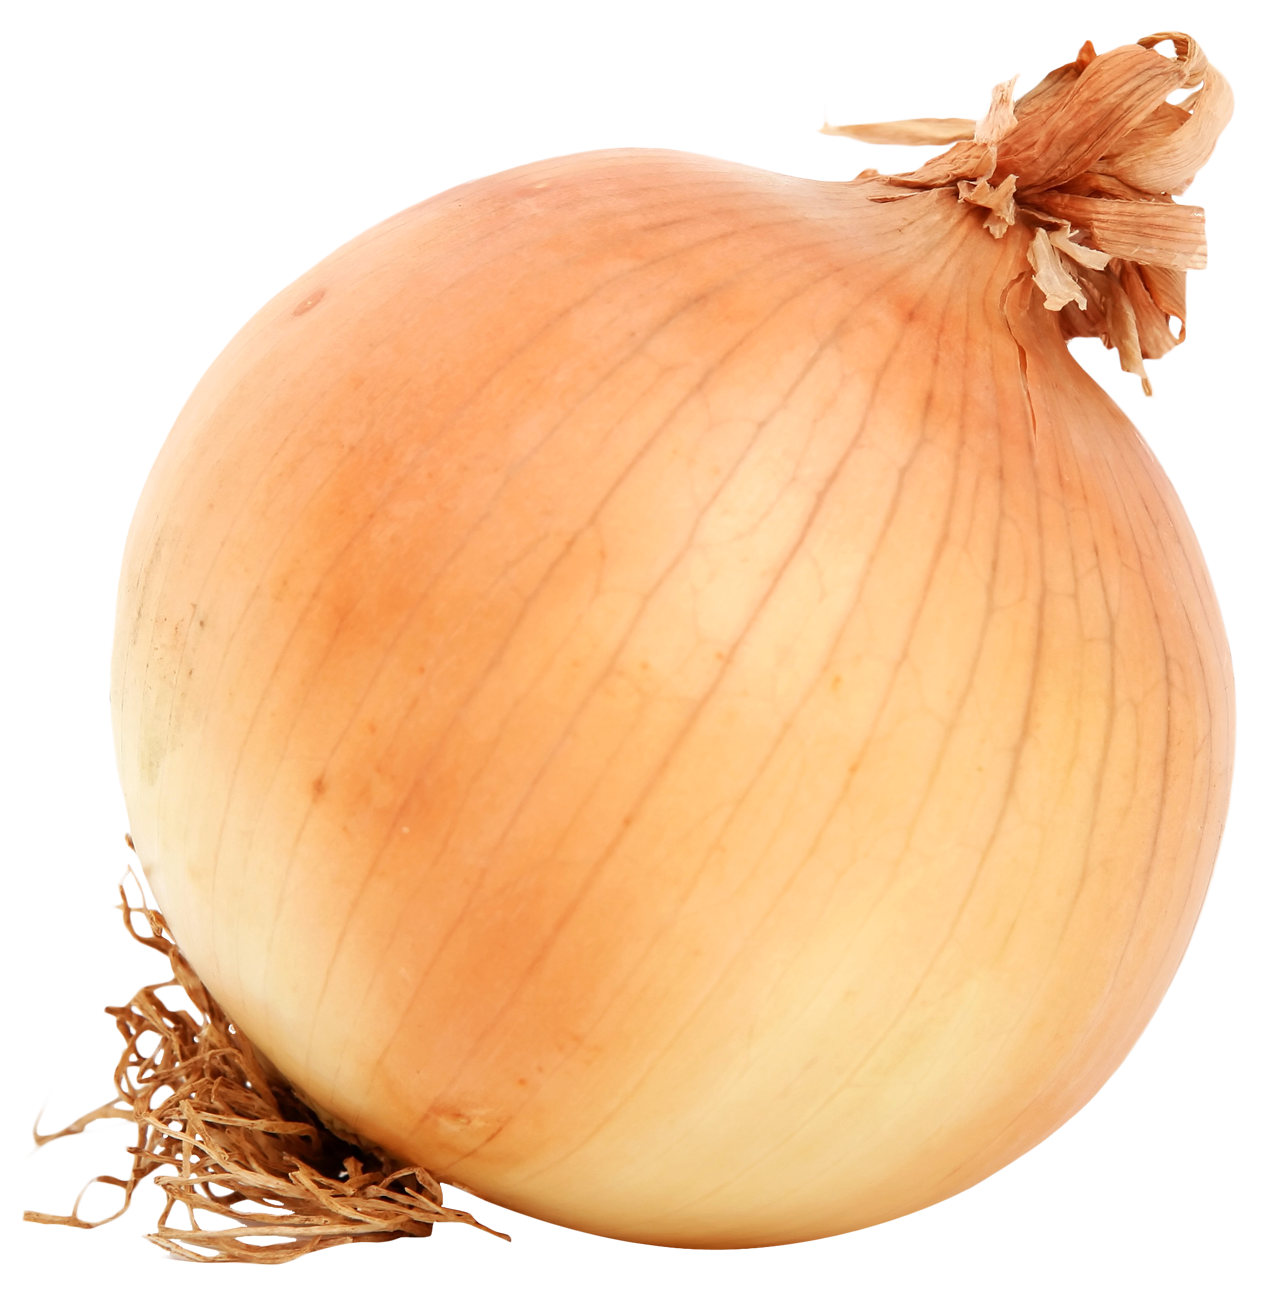 jpg Brown Onion PNG Image